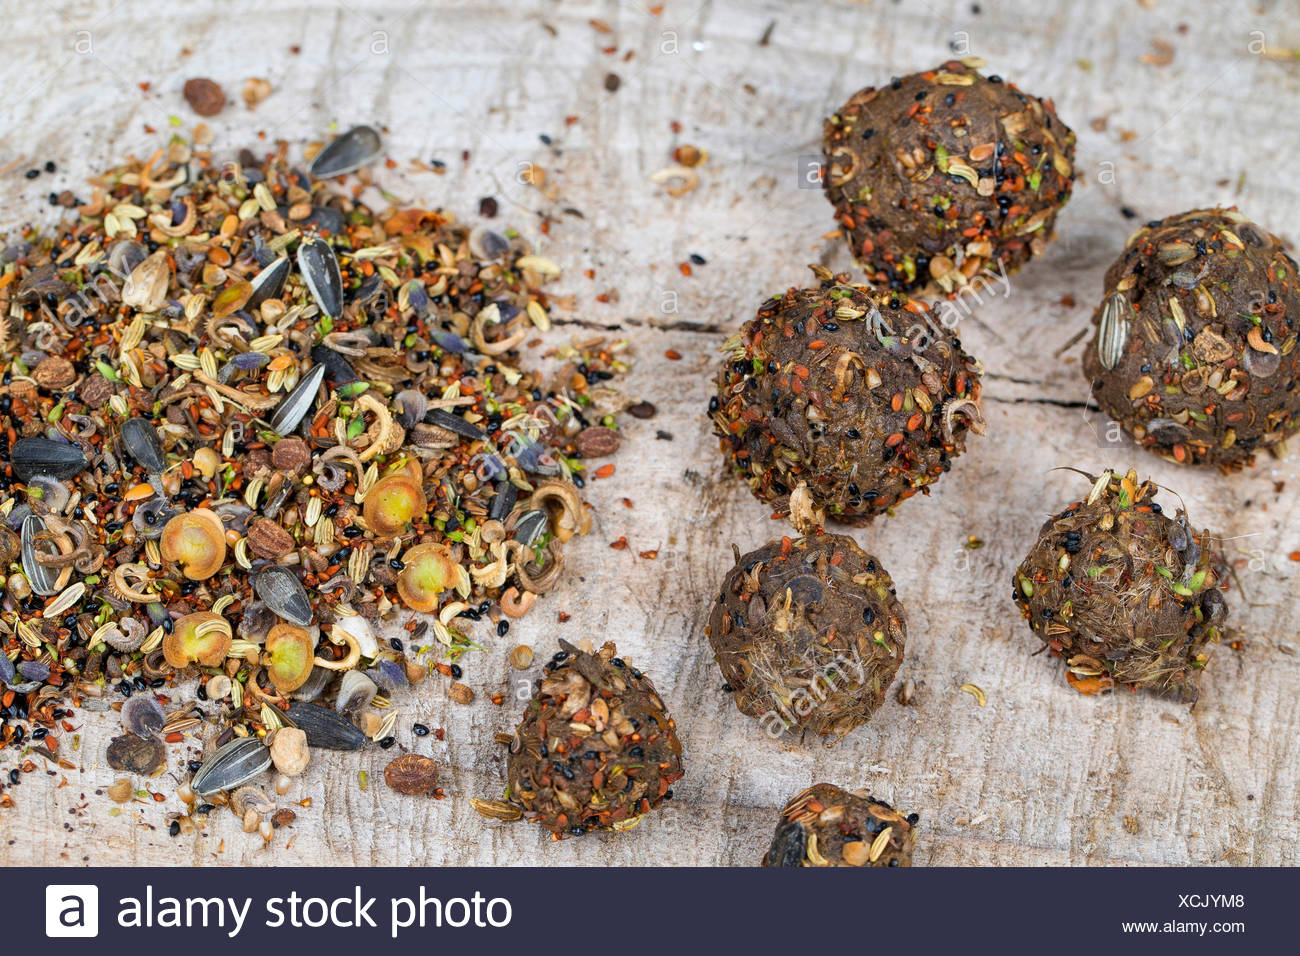 making seed bombs with different seeds and fruits and soil, Germany - Stock Image